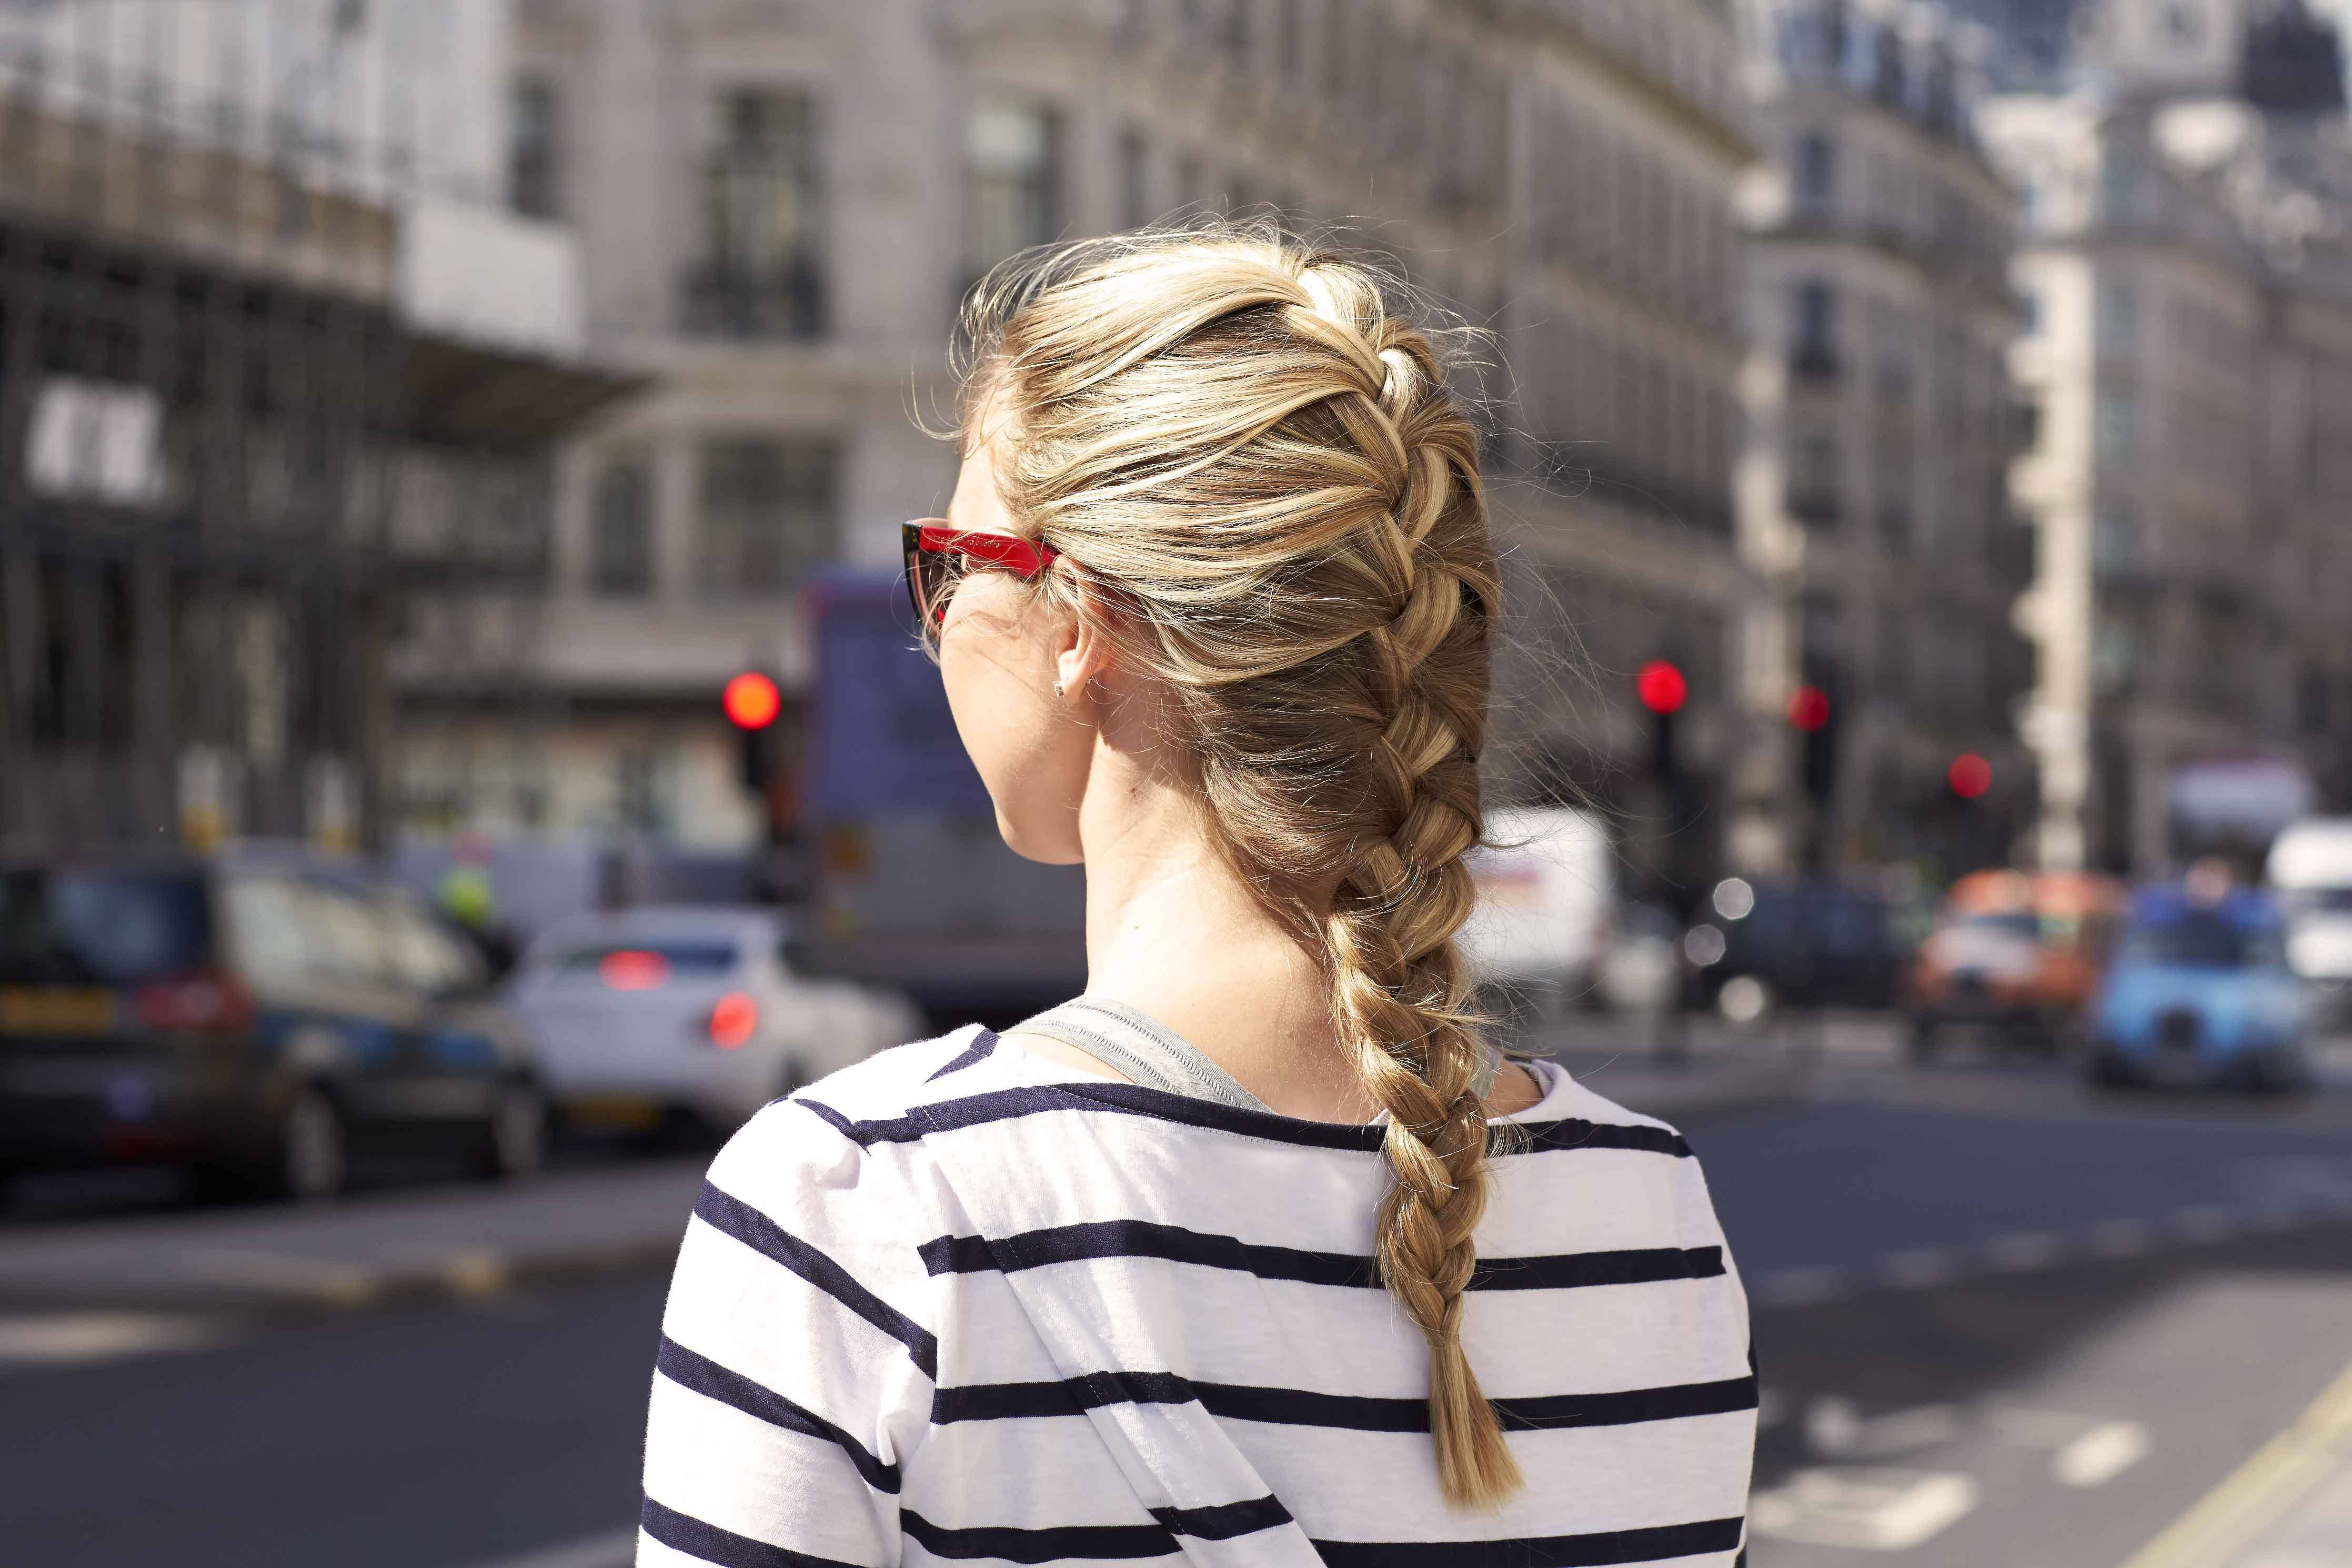 The Back View Of A Blonde With An Easy French Braid